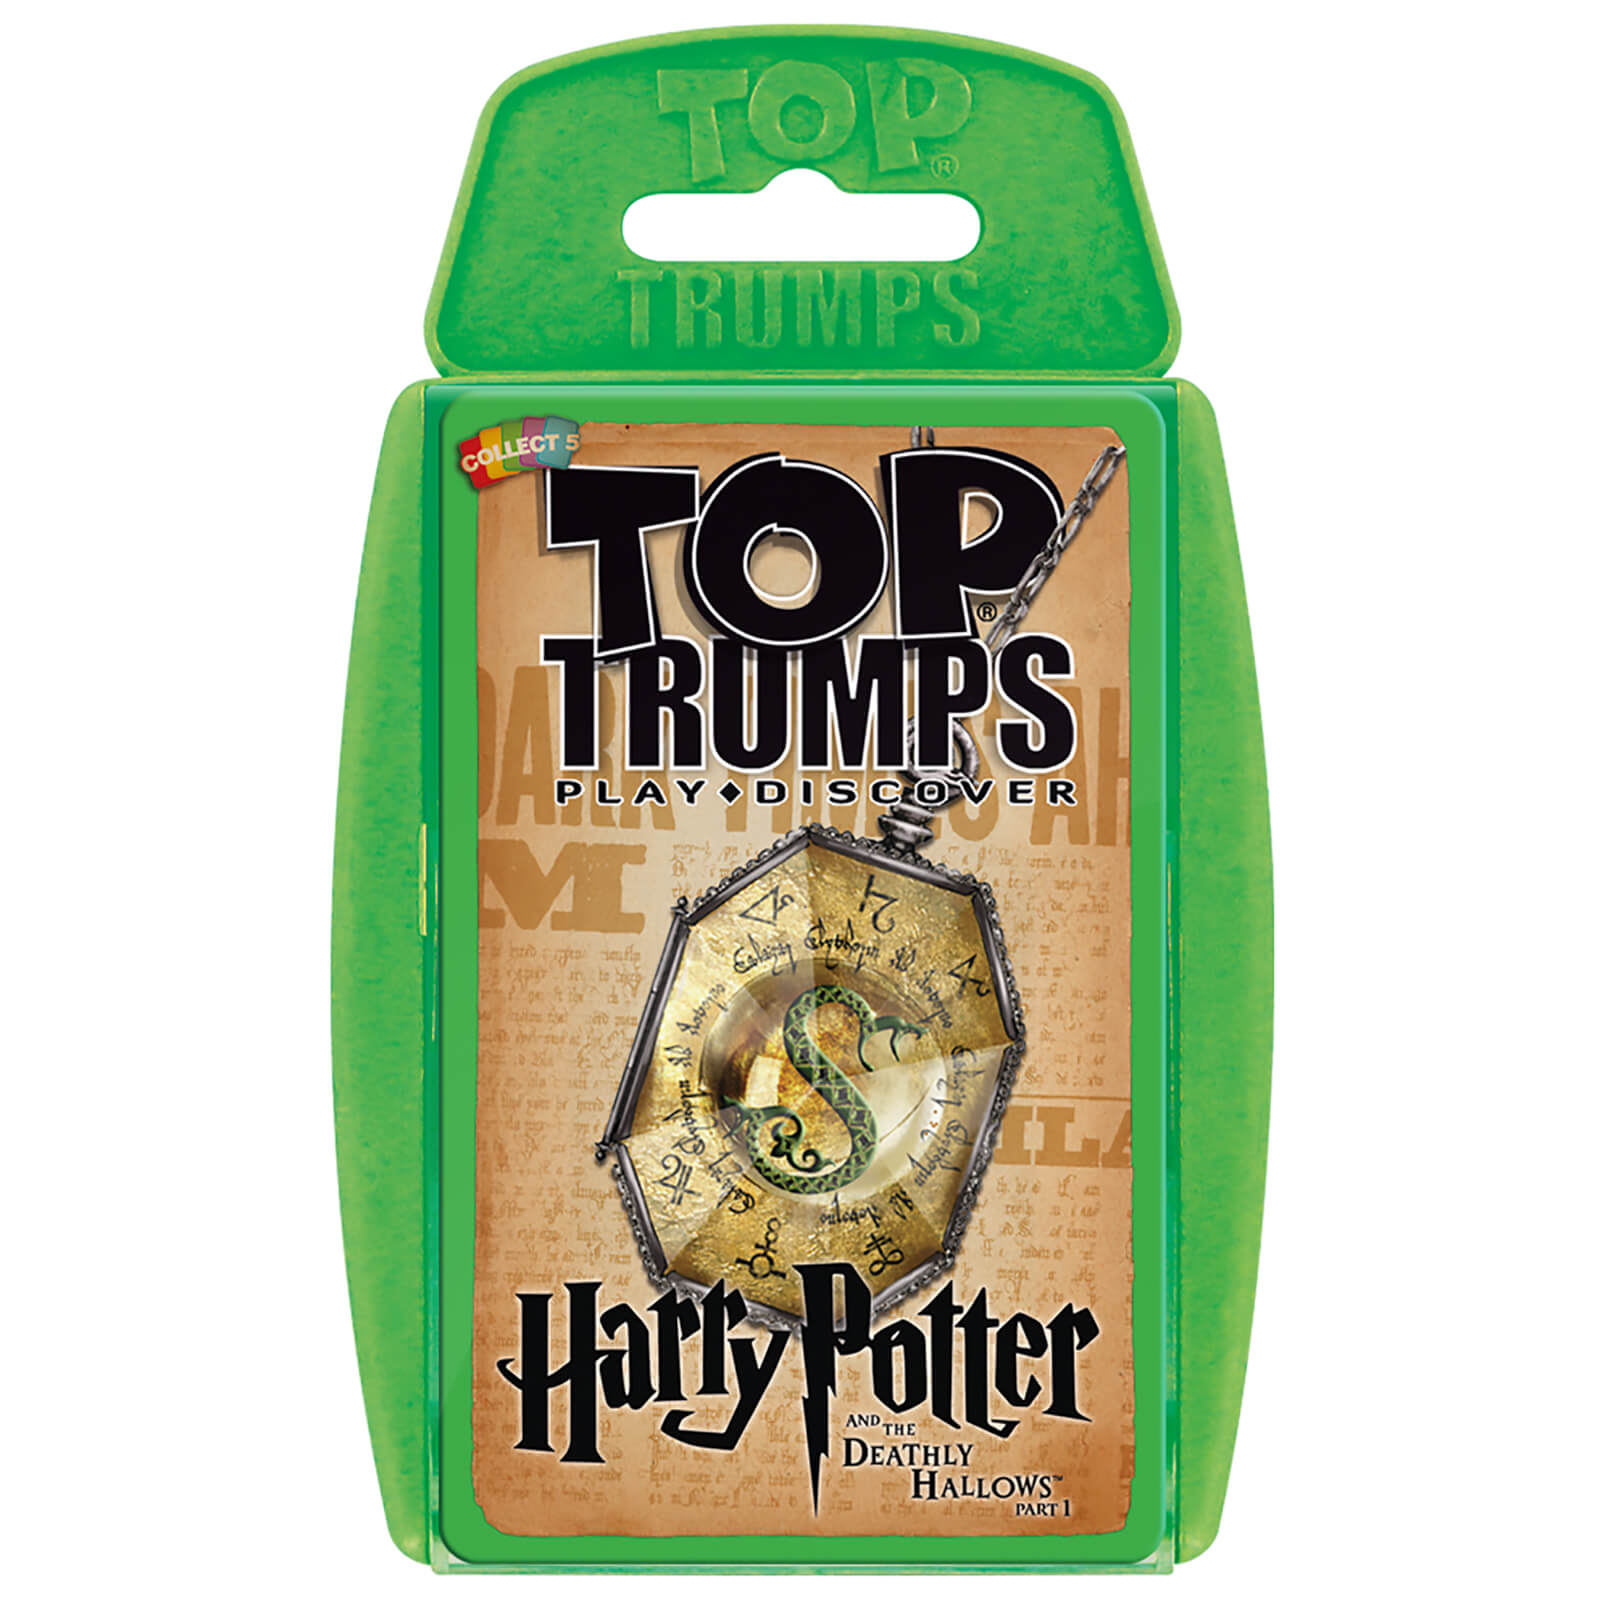 Image of Top Trumps Card Game - Harry Potter and the Deathly Hallows 1 Edition